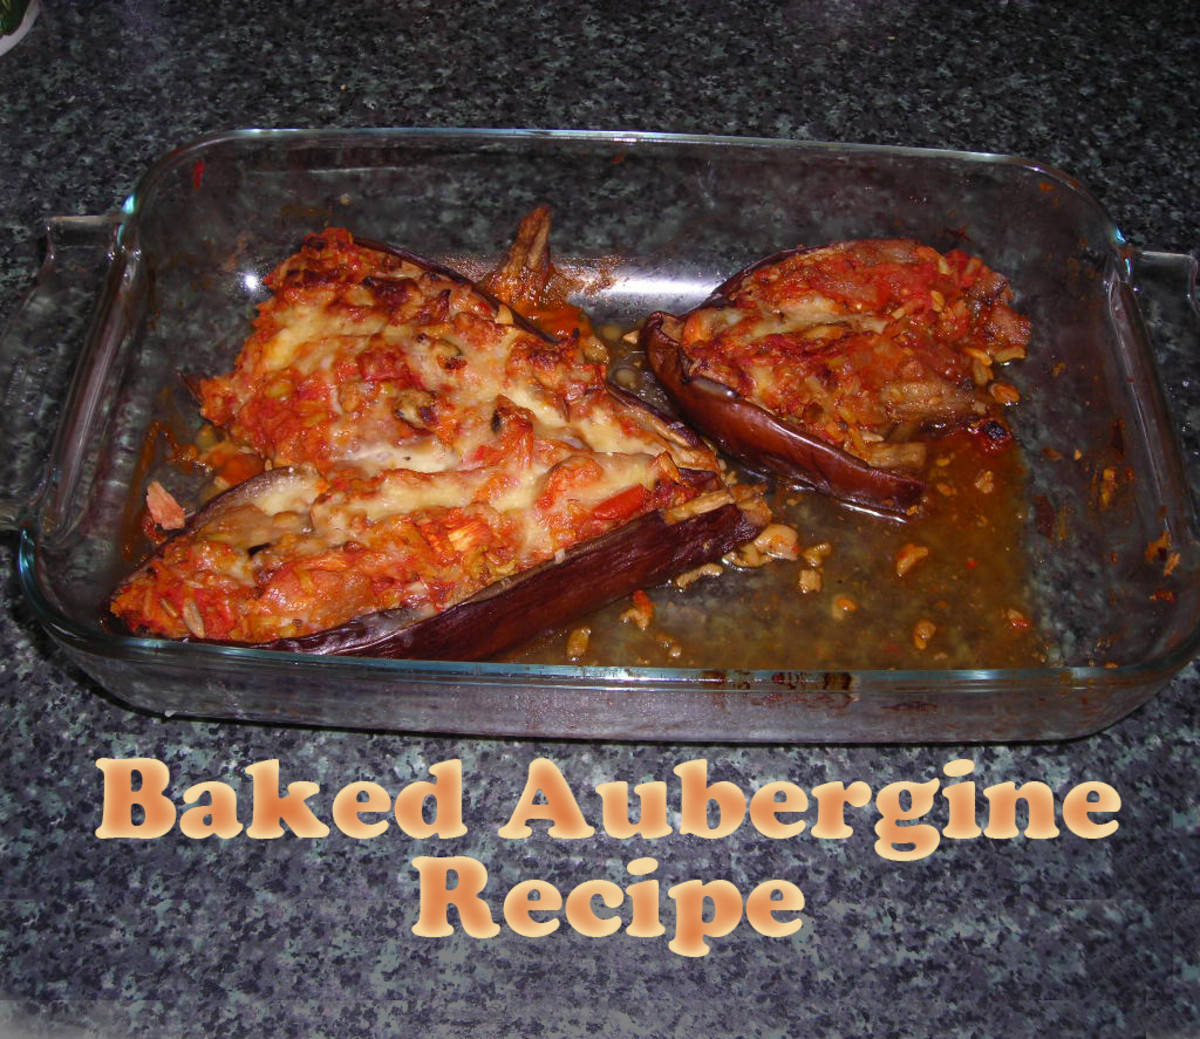 Crispy, aromatic, baked stuffed aubergine—smells divine and tastes delicious!